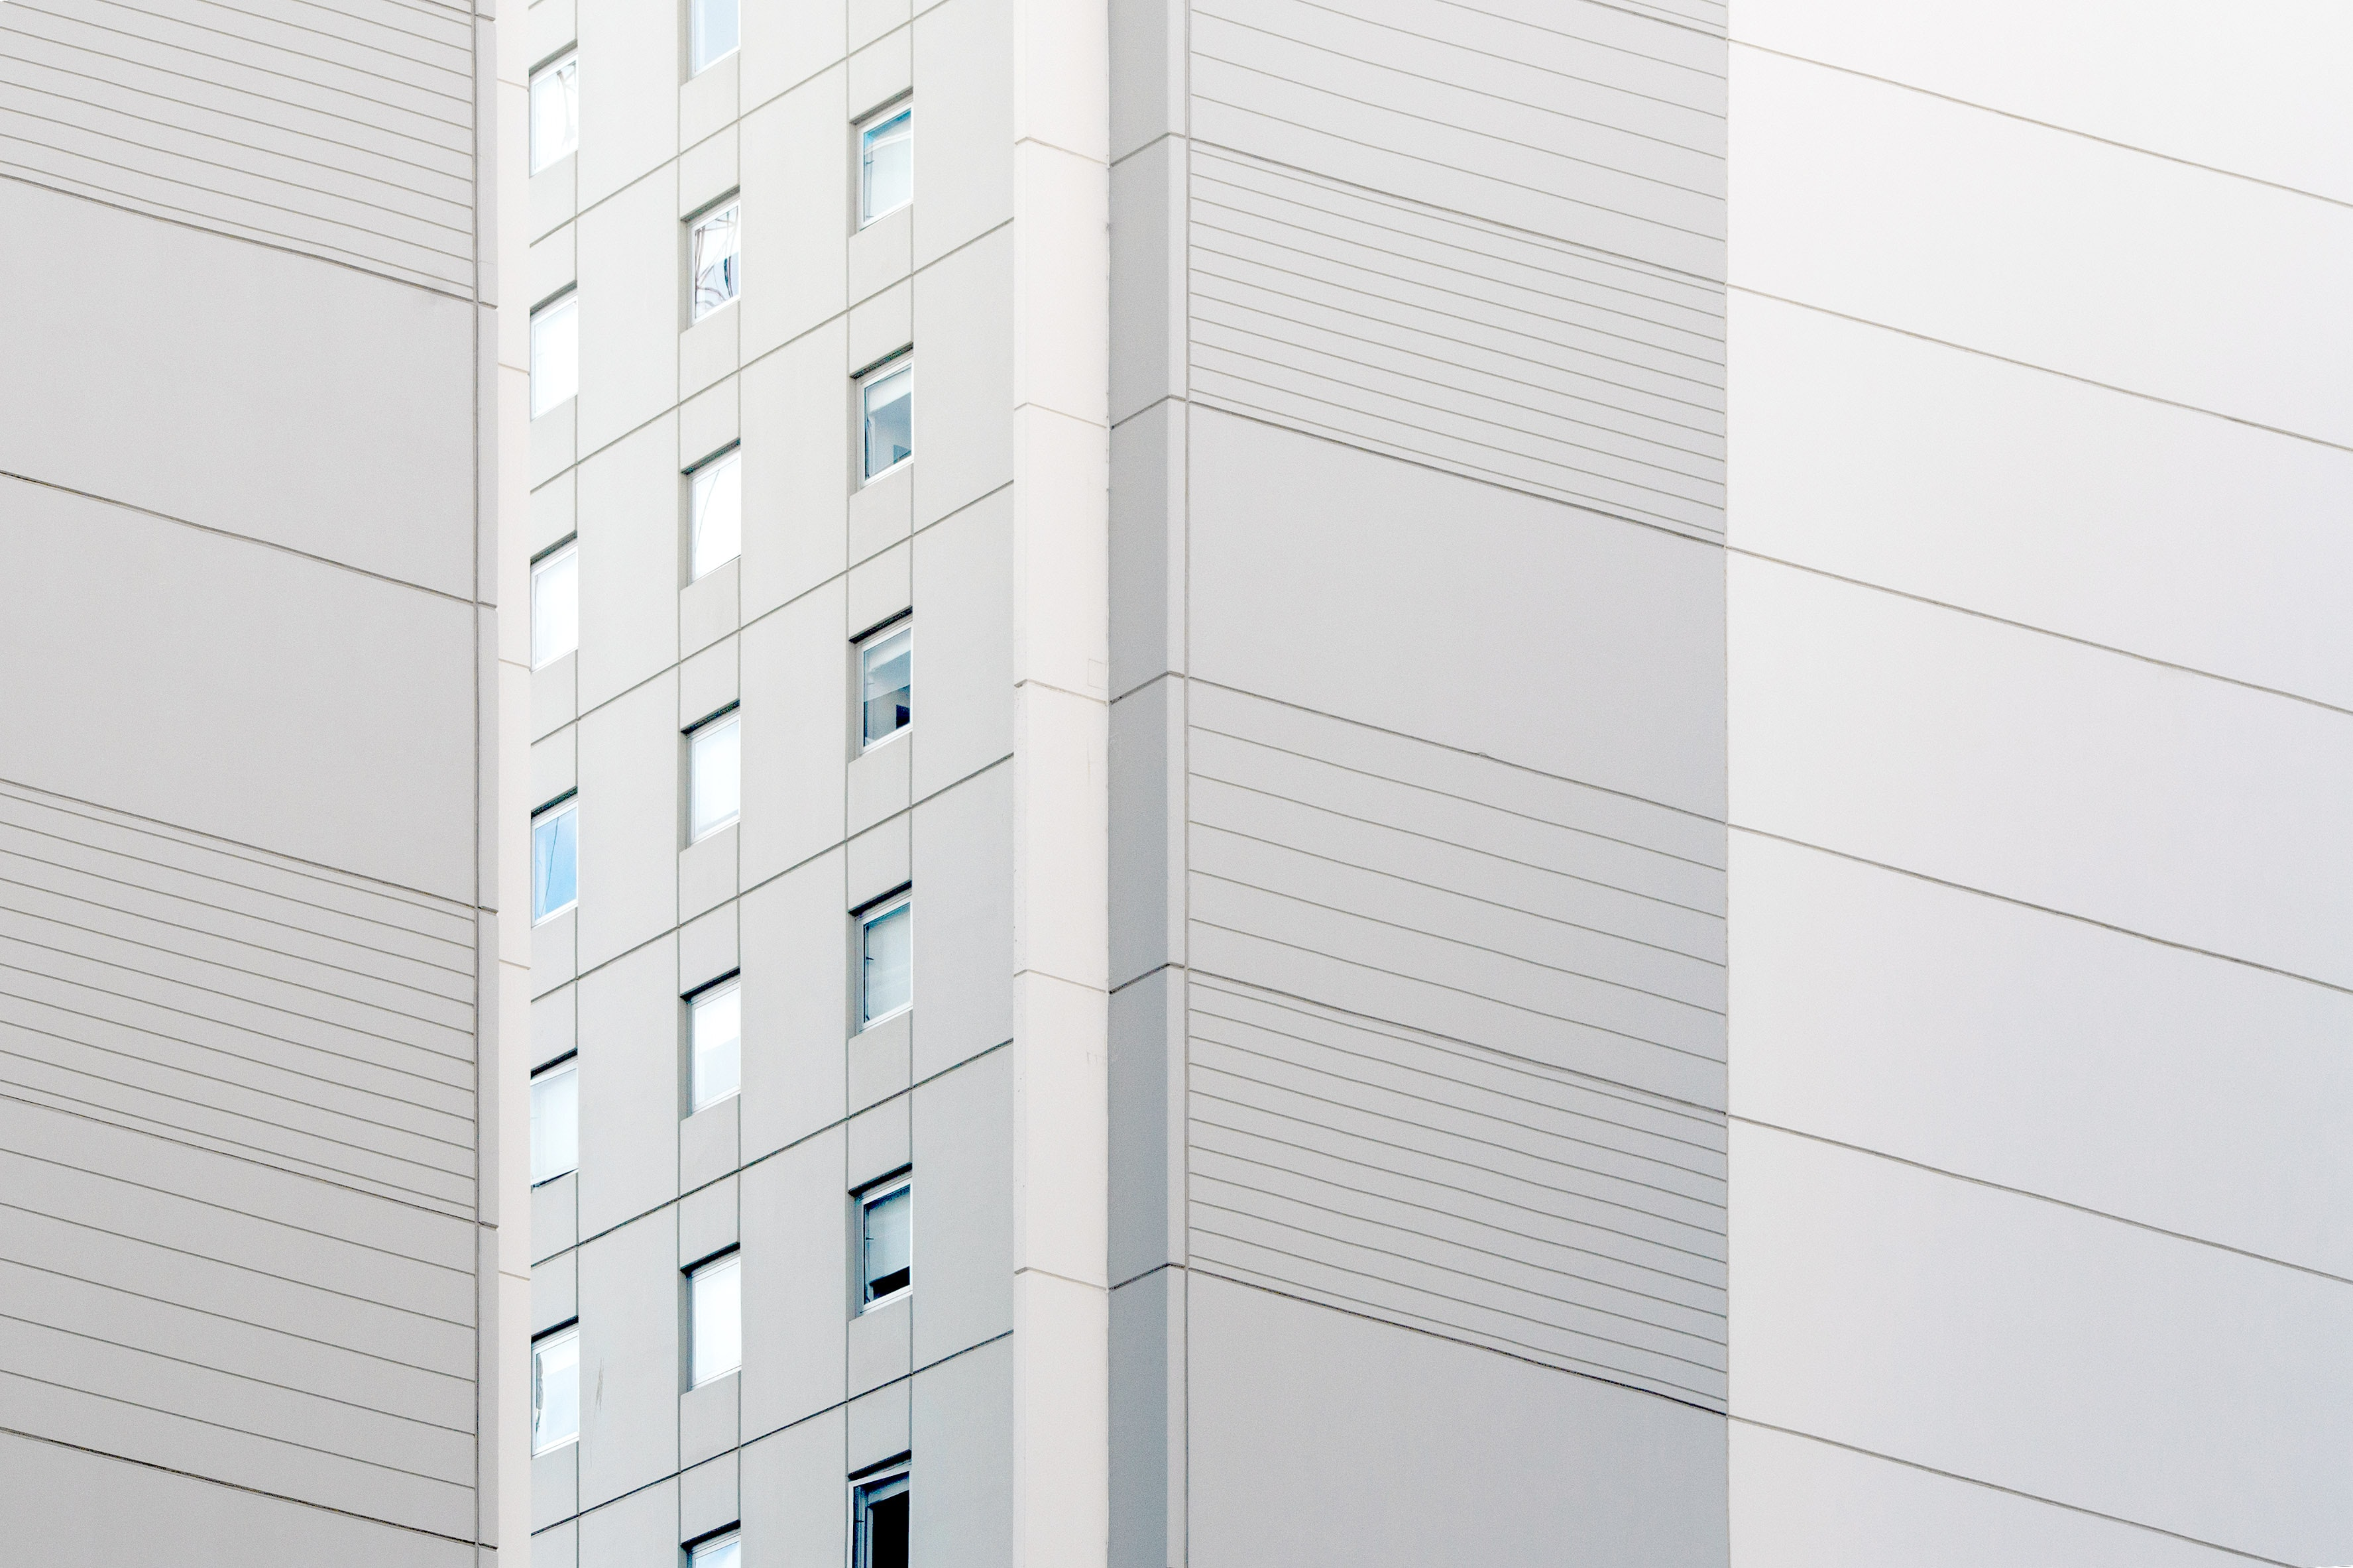 A white and gray facade of an apartment building